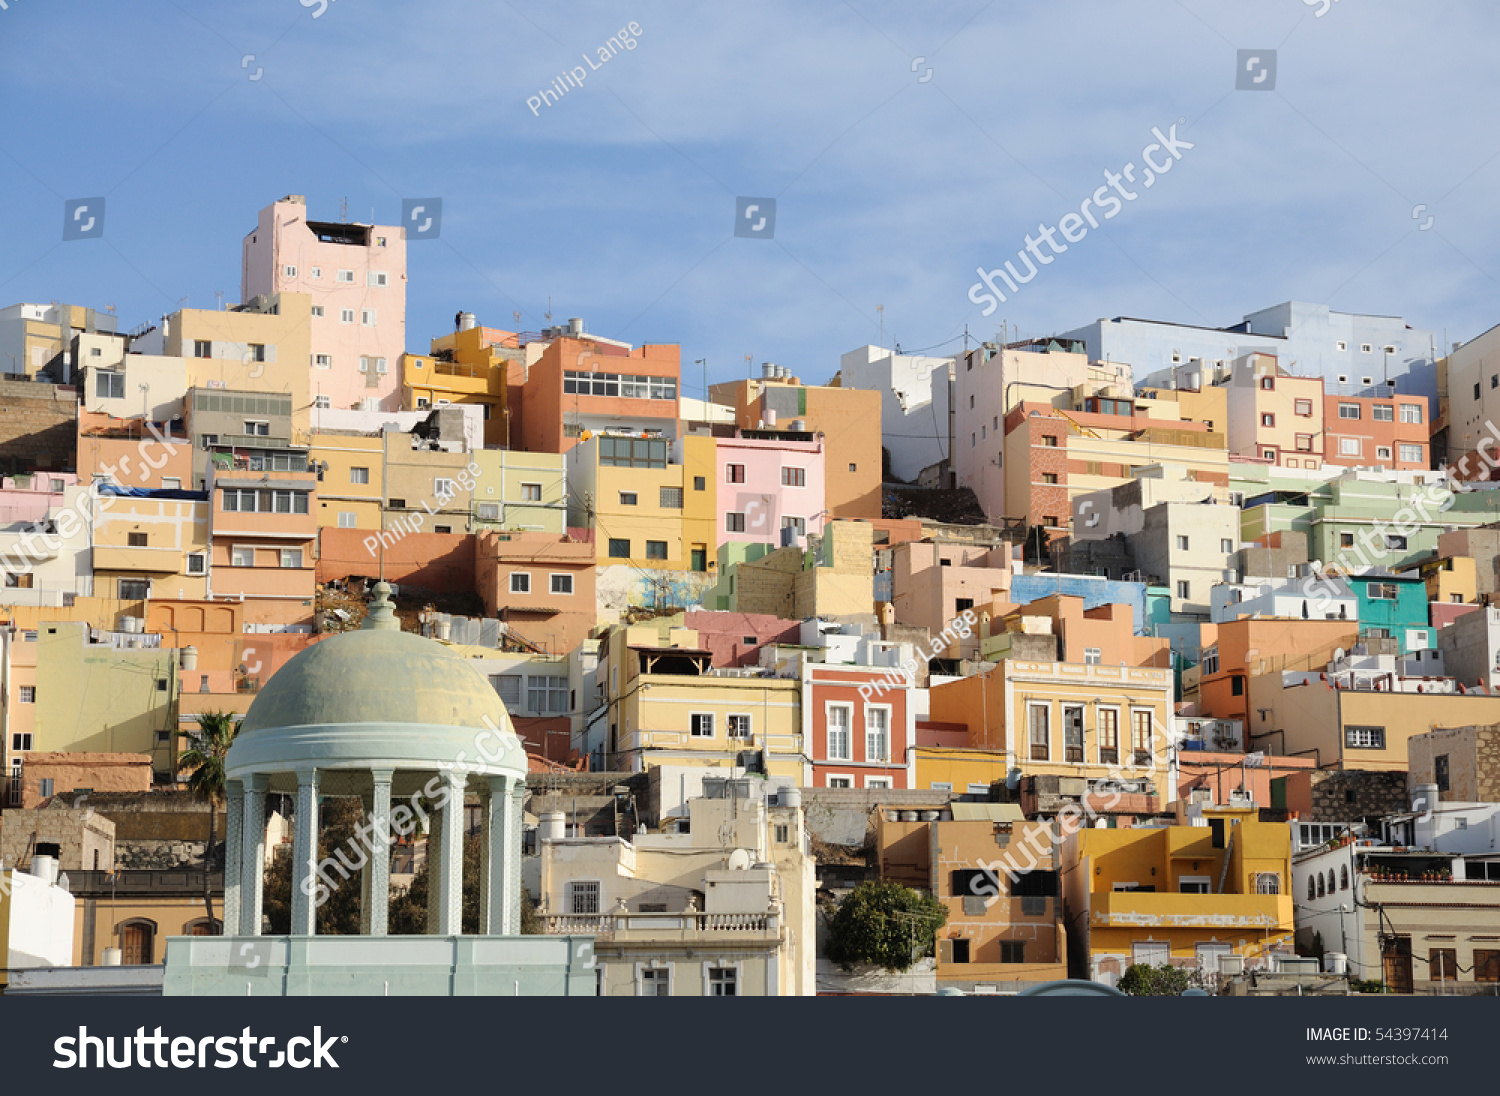 Colorful houses in las palmas de gran canaria spain stock - Houses in gran canaria ...